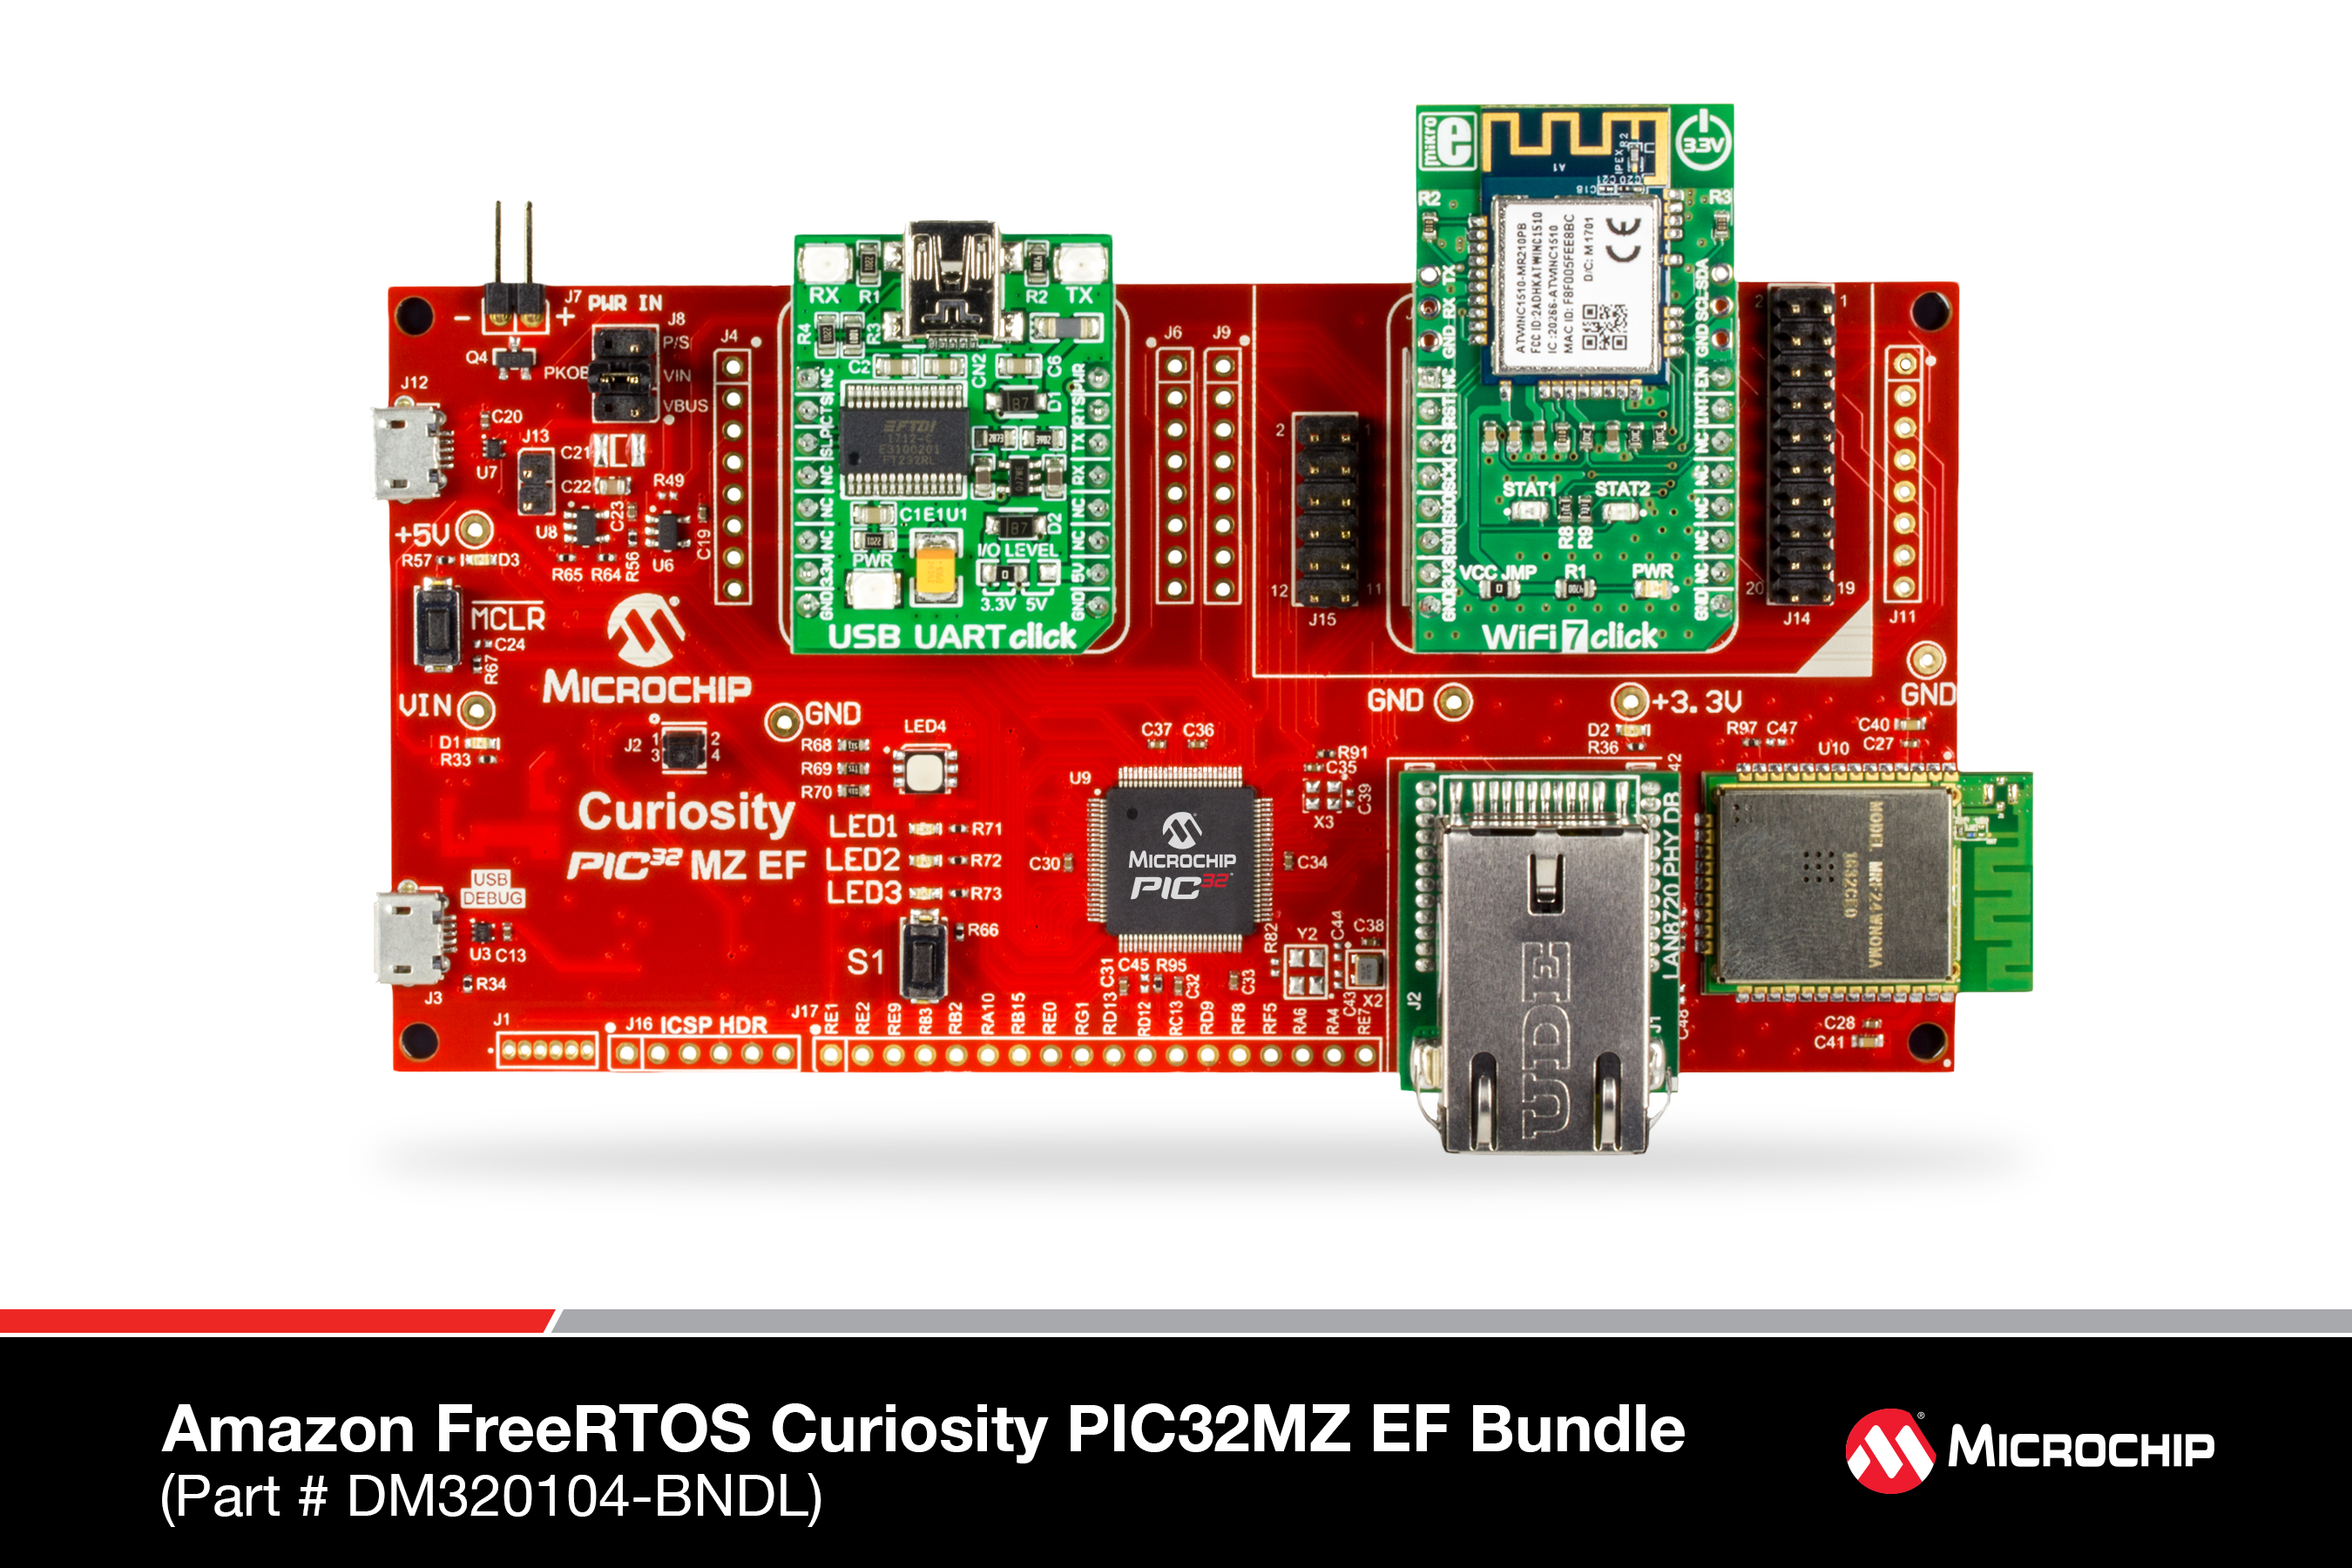 Development Tools Led Circuit Board Kits This Kit Uses A Flashing Amazon Freertos Curiosity Pic32mz Ef Bundle Is Used To Develop Based Applications The Consists Of